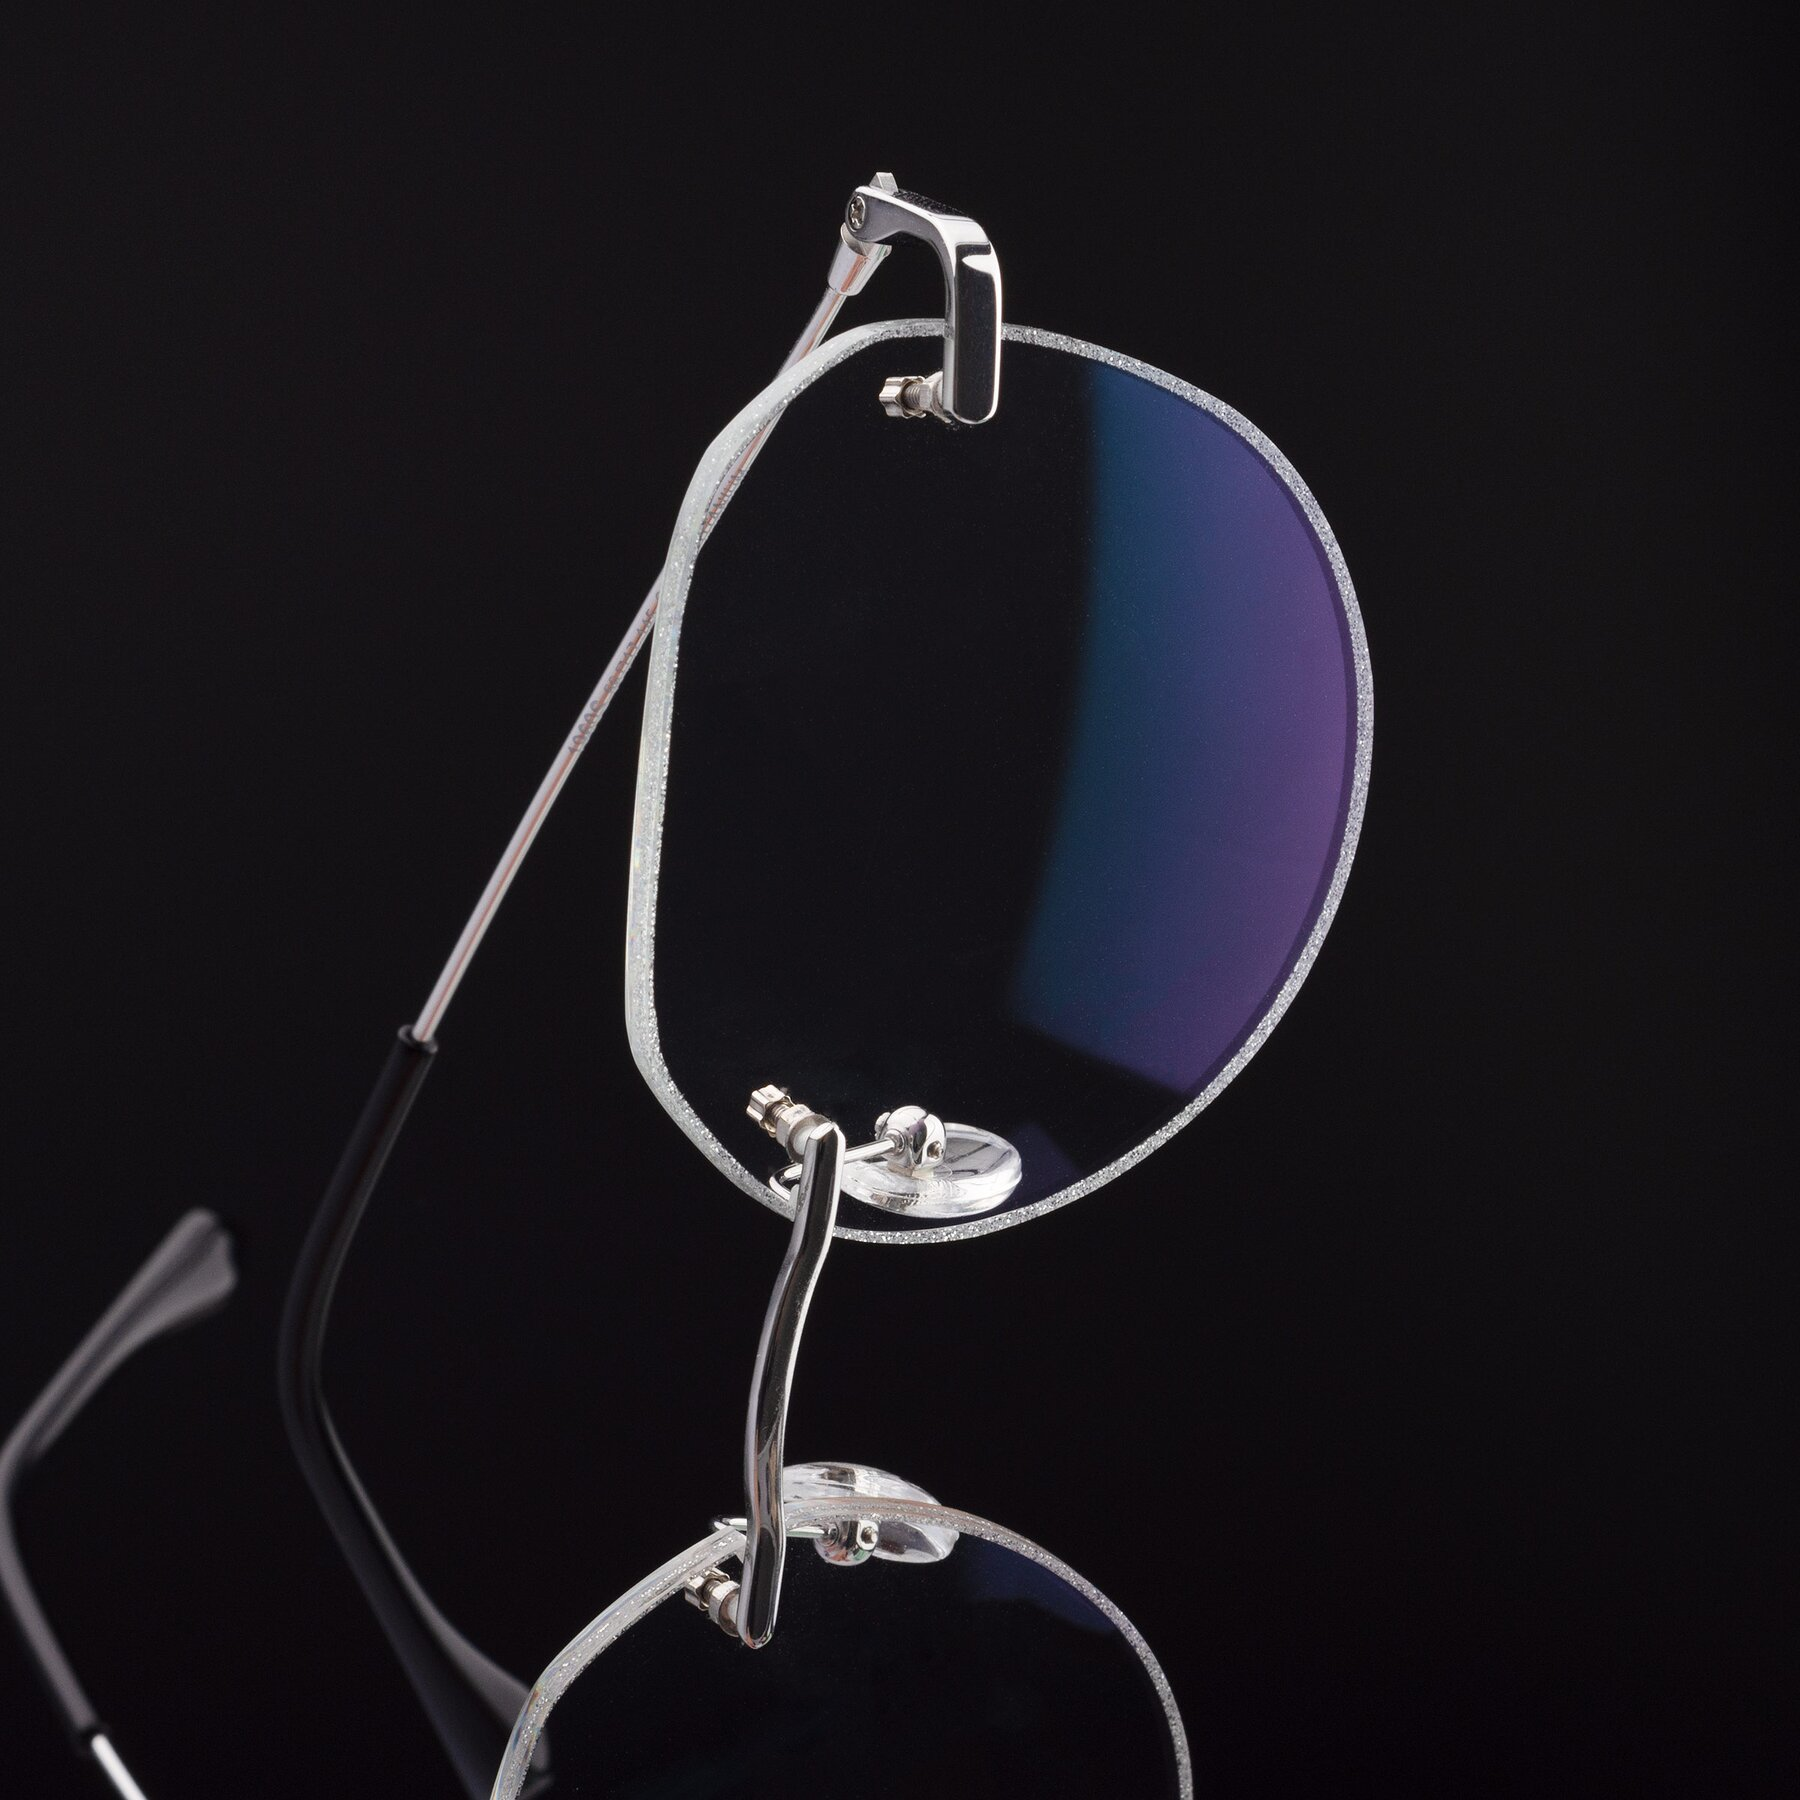 Women's lifestyle photography #1 of 1960S in Silver-Silver Glitter with Clear Blue Light Blocking Lenses